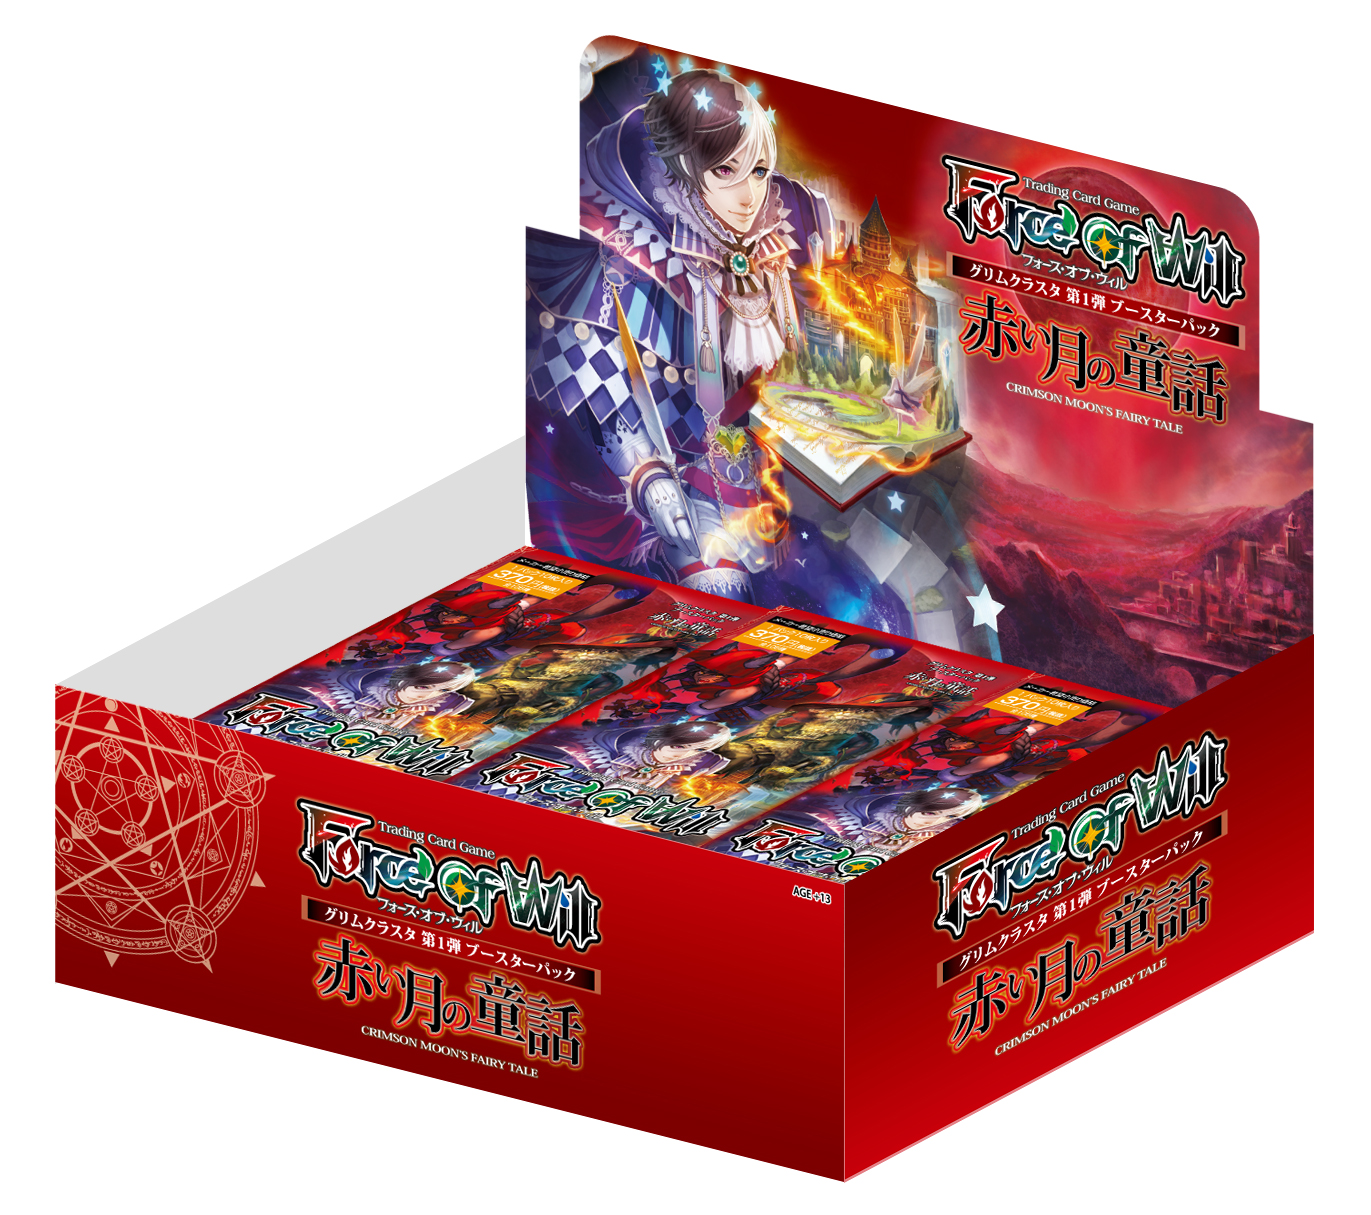 Force of Will Crimson Moon/'s Fairy Tale Booster Box Sealed Grimm Cluster FOW